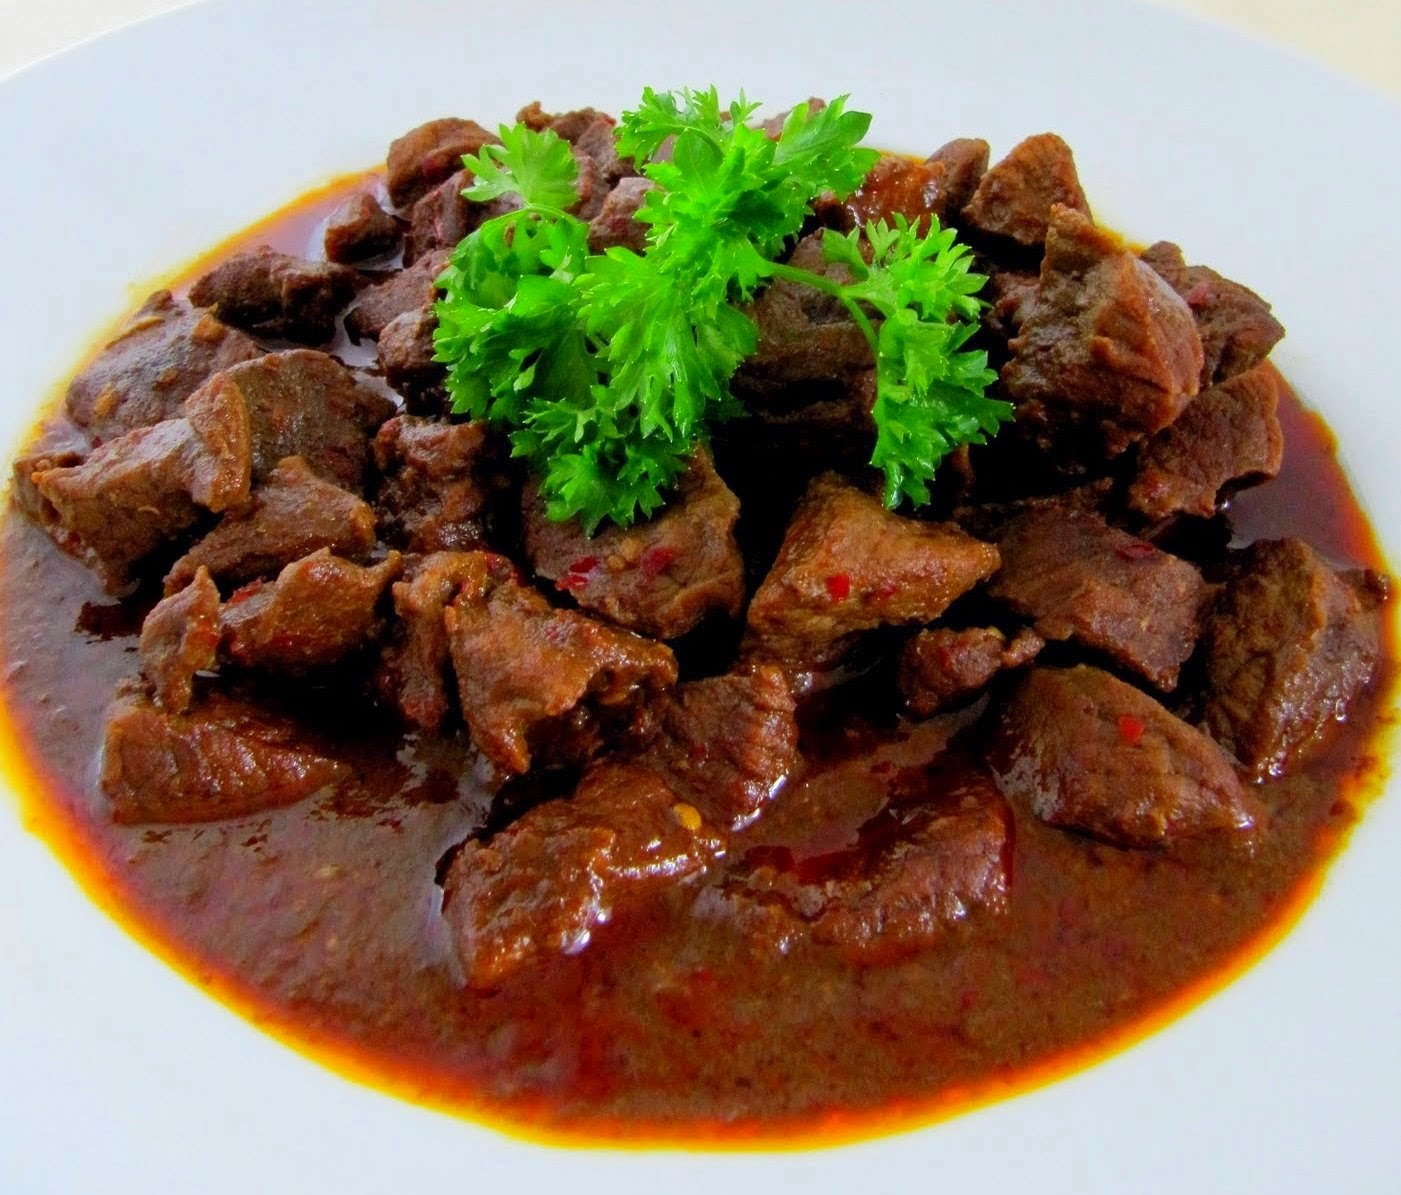 ... Beef Rendang | Home-Cooked Food Recipes: Secret Recipe Beef Rendang